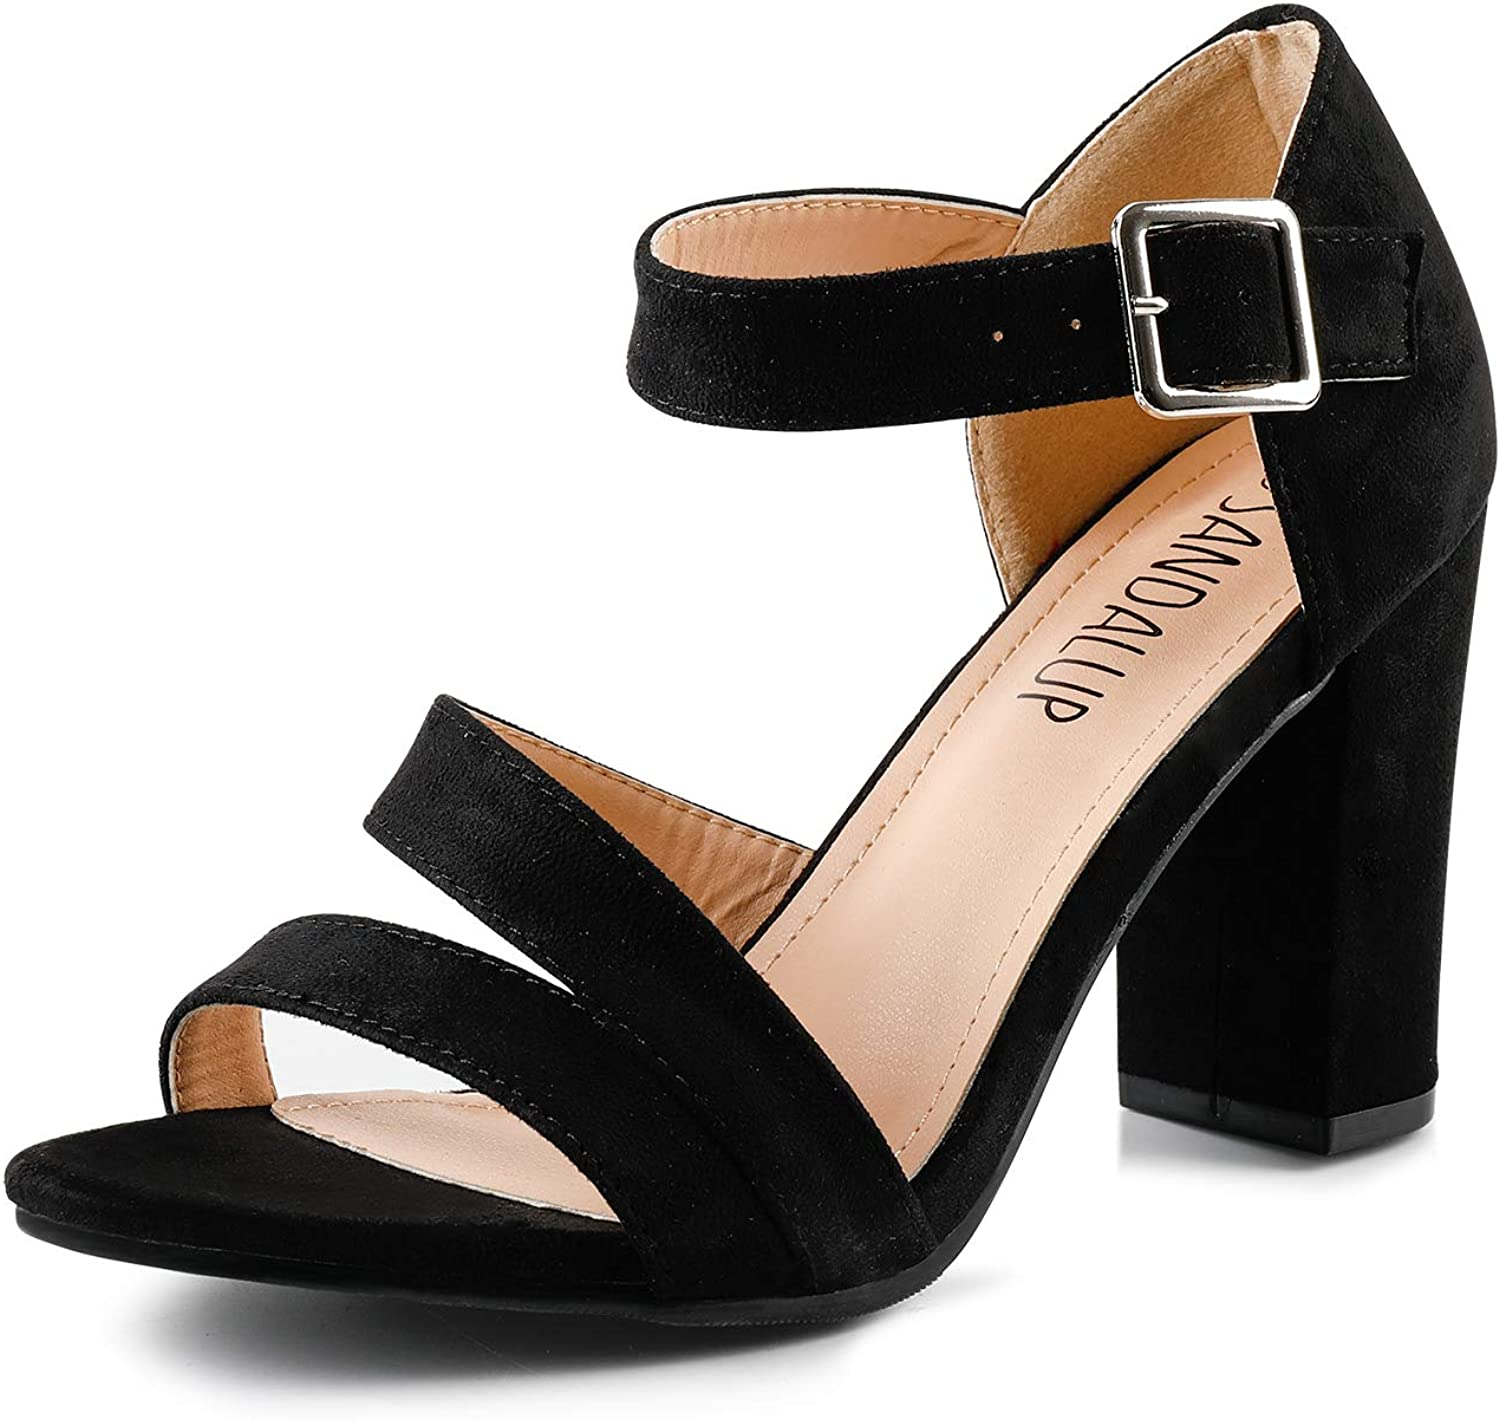 Sandalup Women's Chunky Block High Heel Toe Sandals An Open Cheap New York Mall mail order sales with